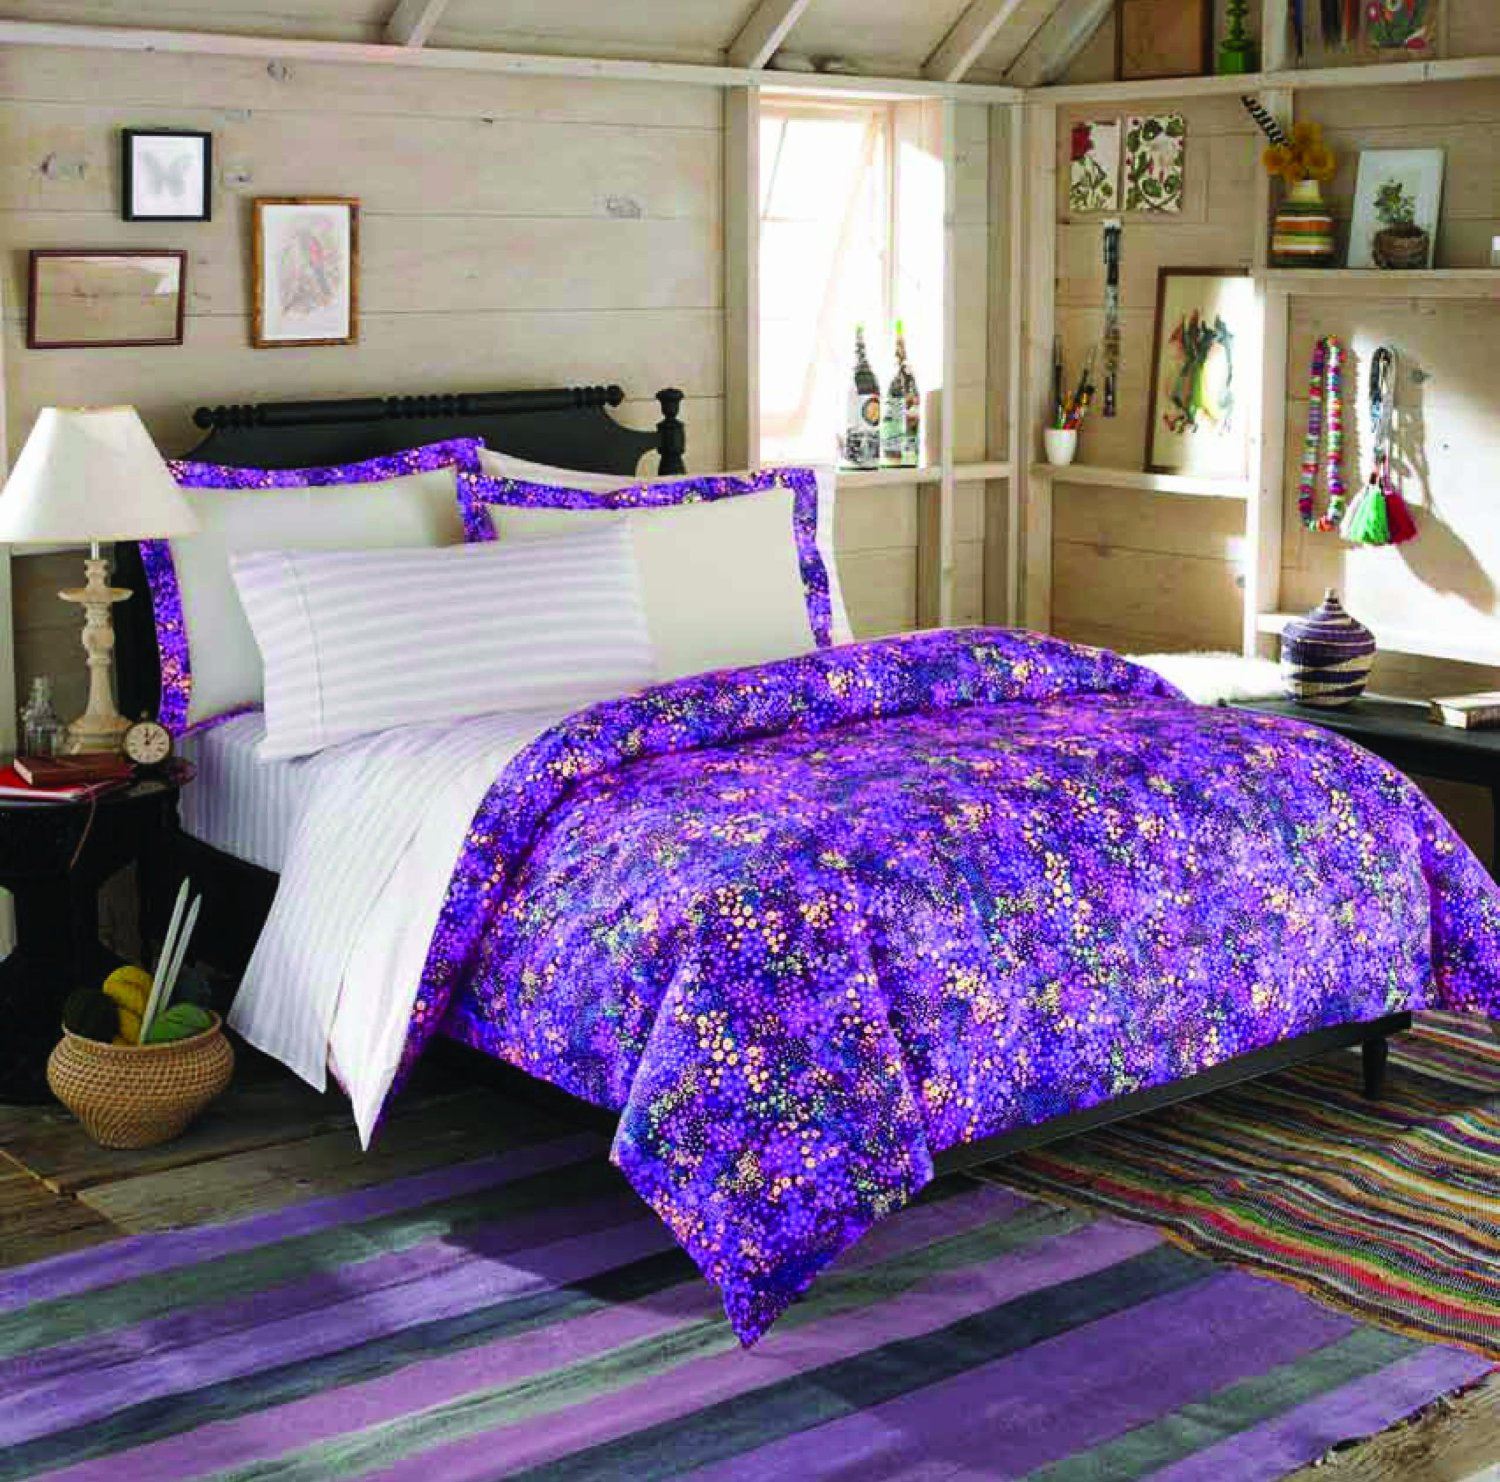 Get teen vogue full queen comforter set for 65 shipped for Bedding violet